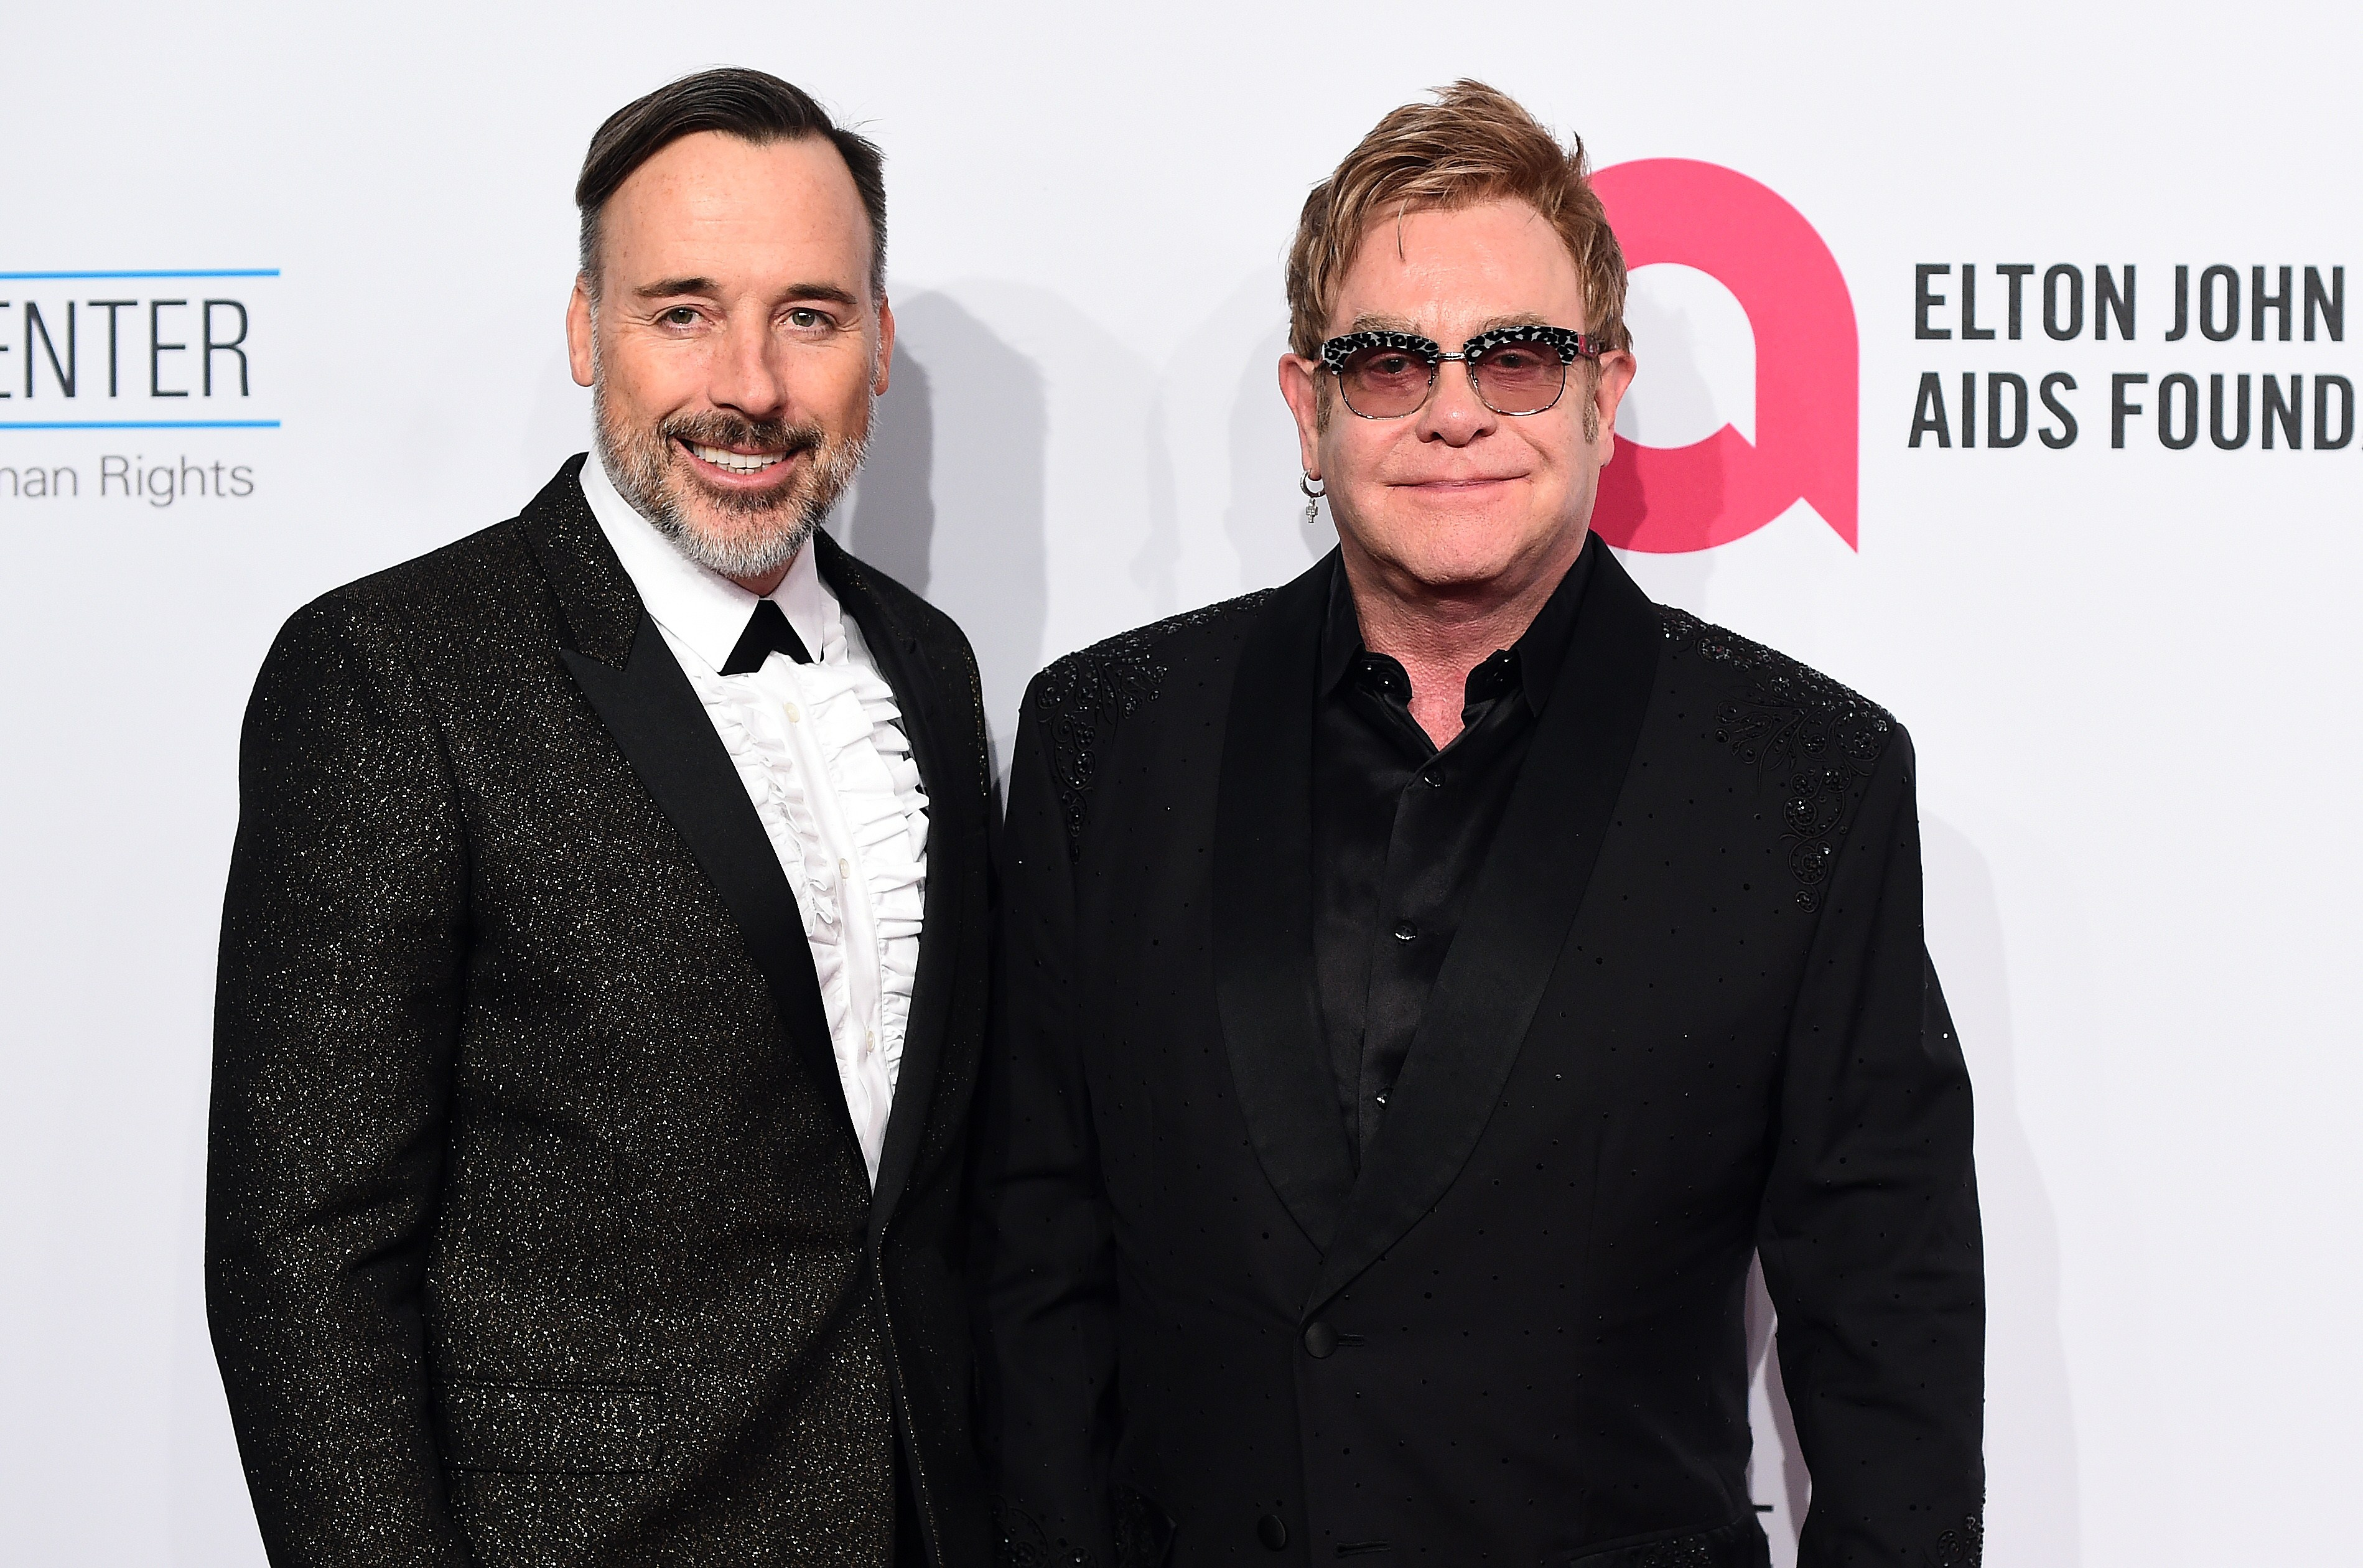 Film maker David Furnish and musician Sir Elton John arrive to attend the Elton John AIDS Foundation's 13th Annual An Enduring Vision Benefit on Oct. 28, 2014 in New York.